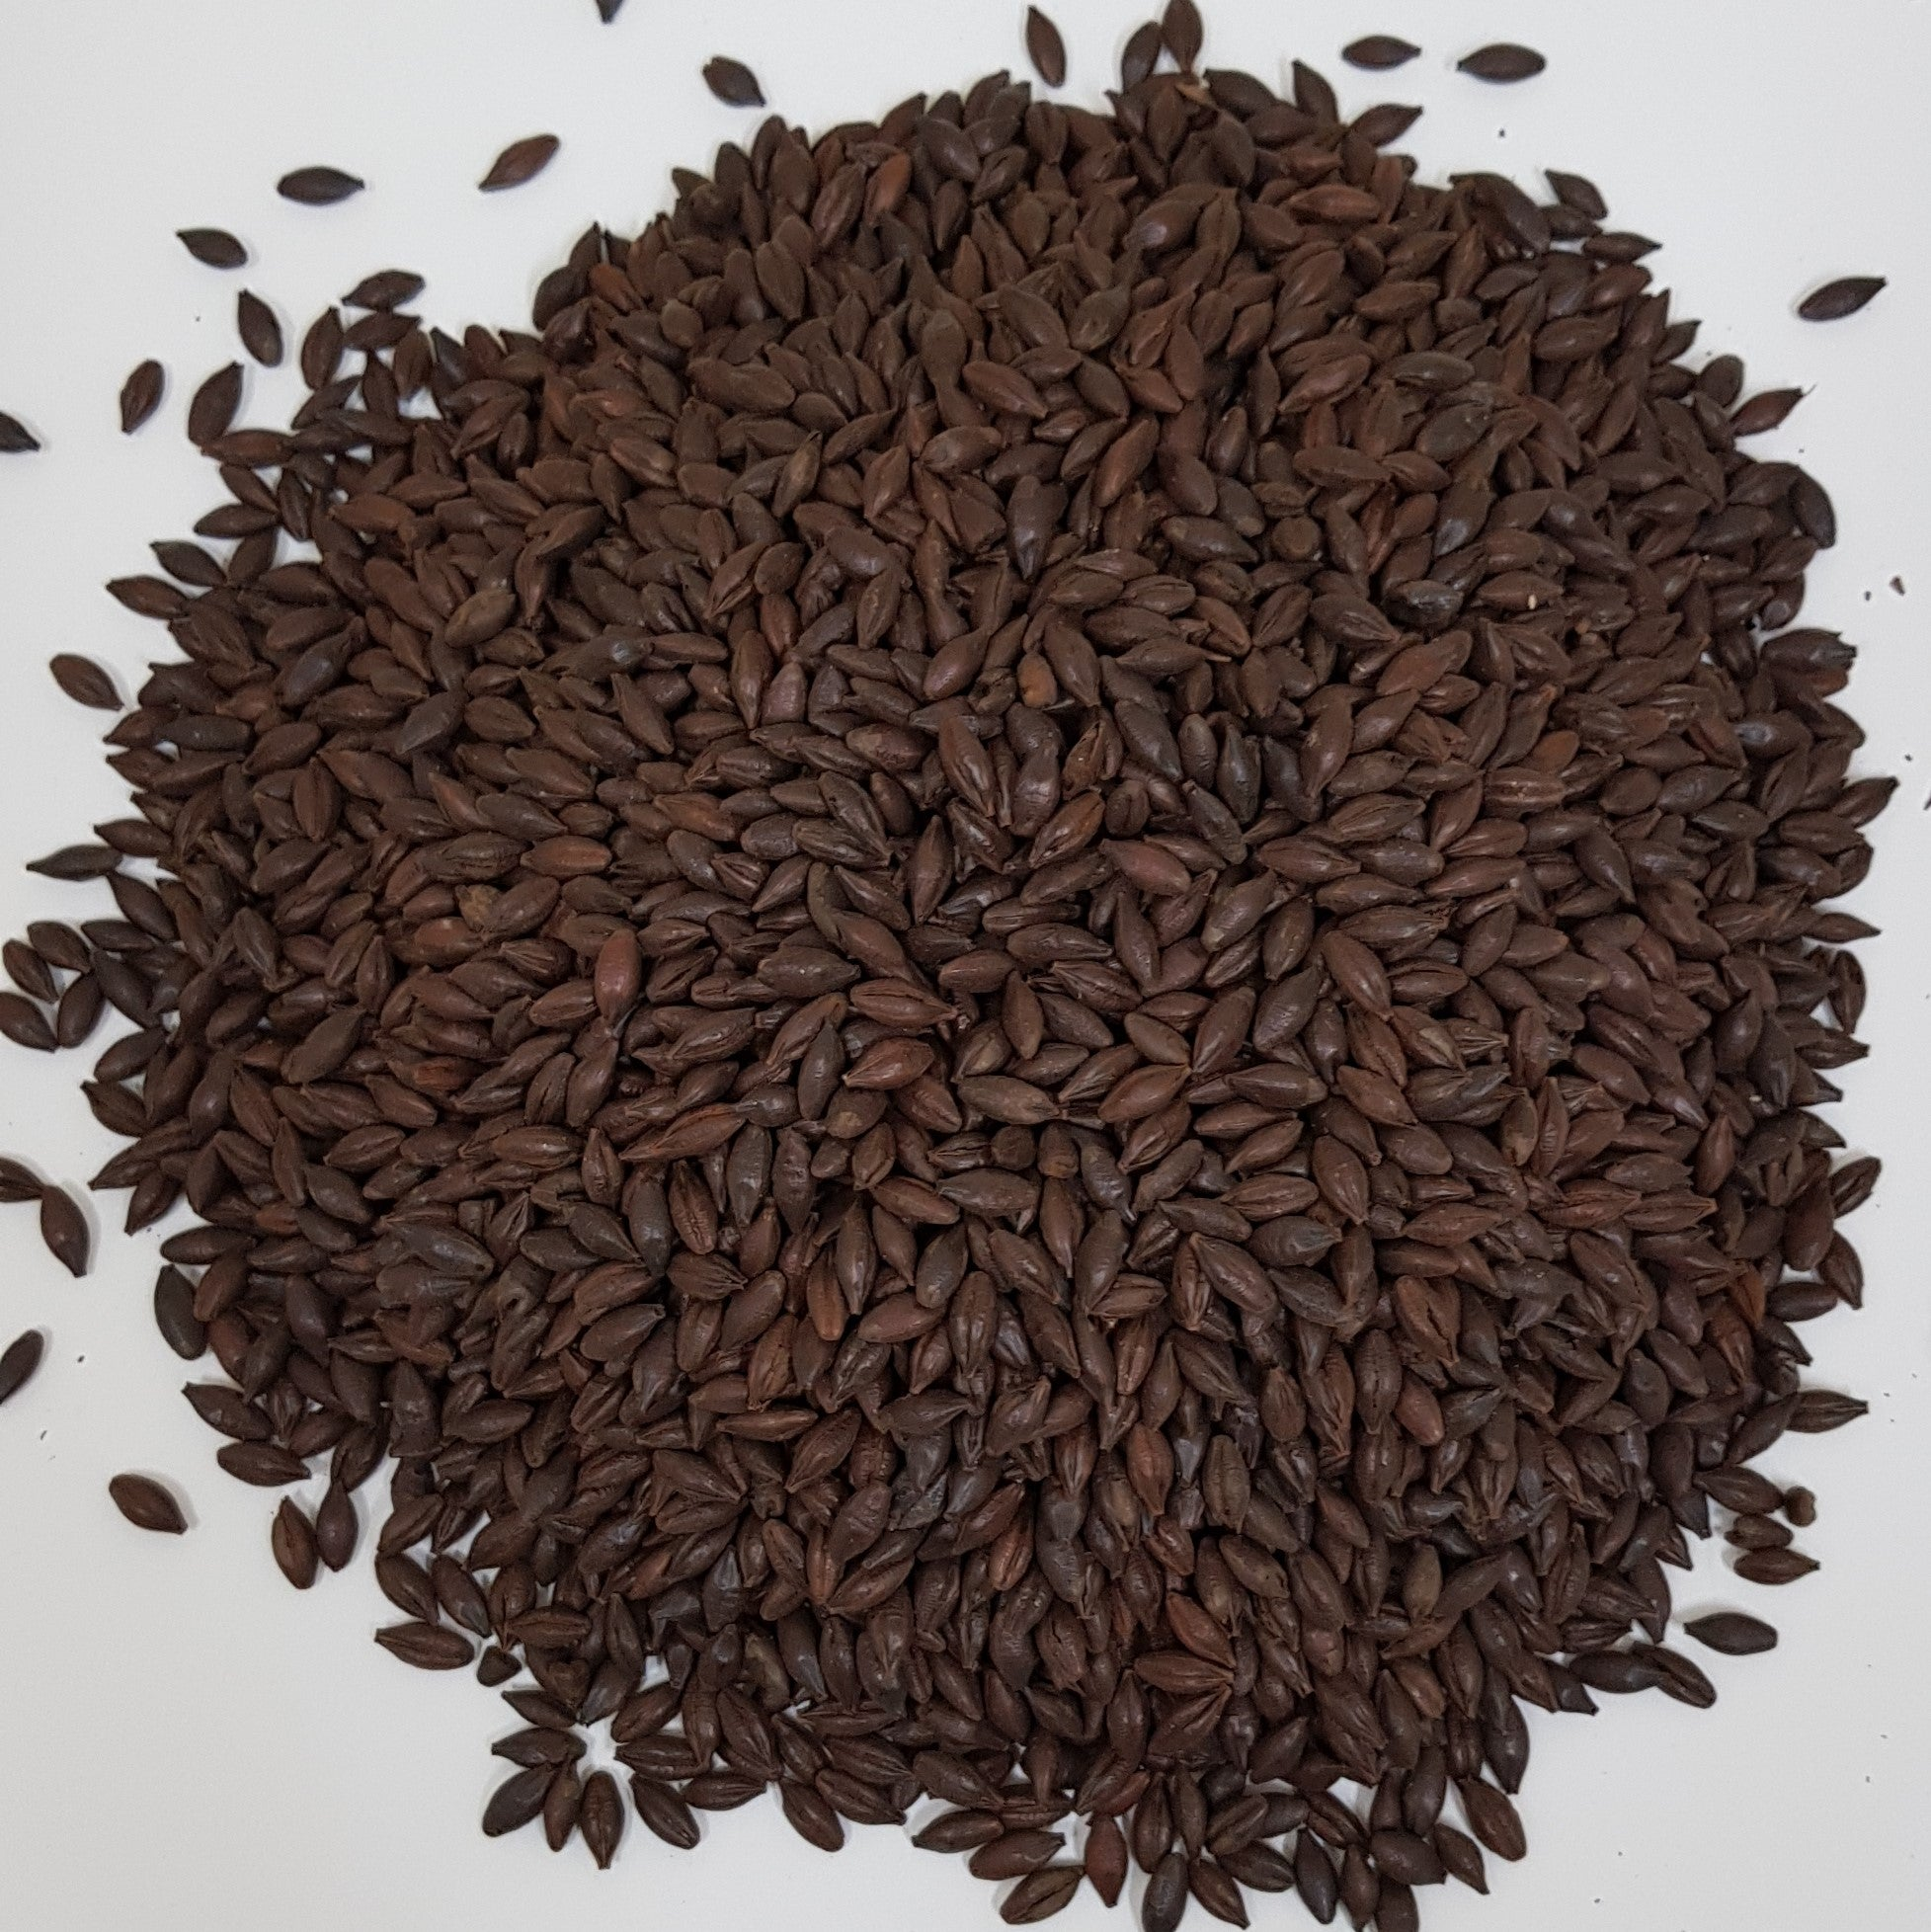 Gladfield Roasted Barley (Milled)